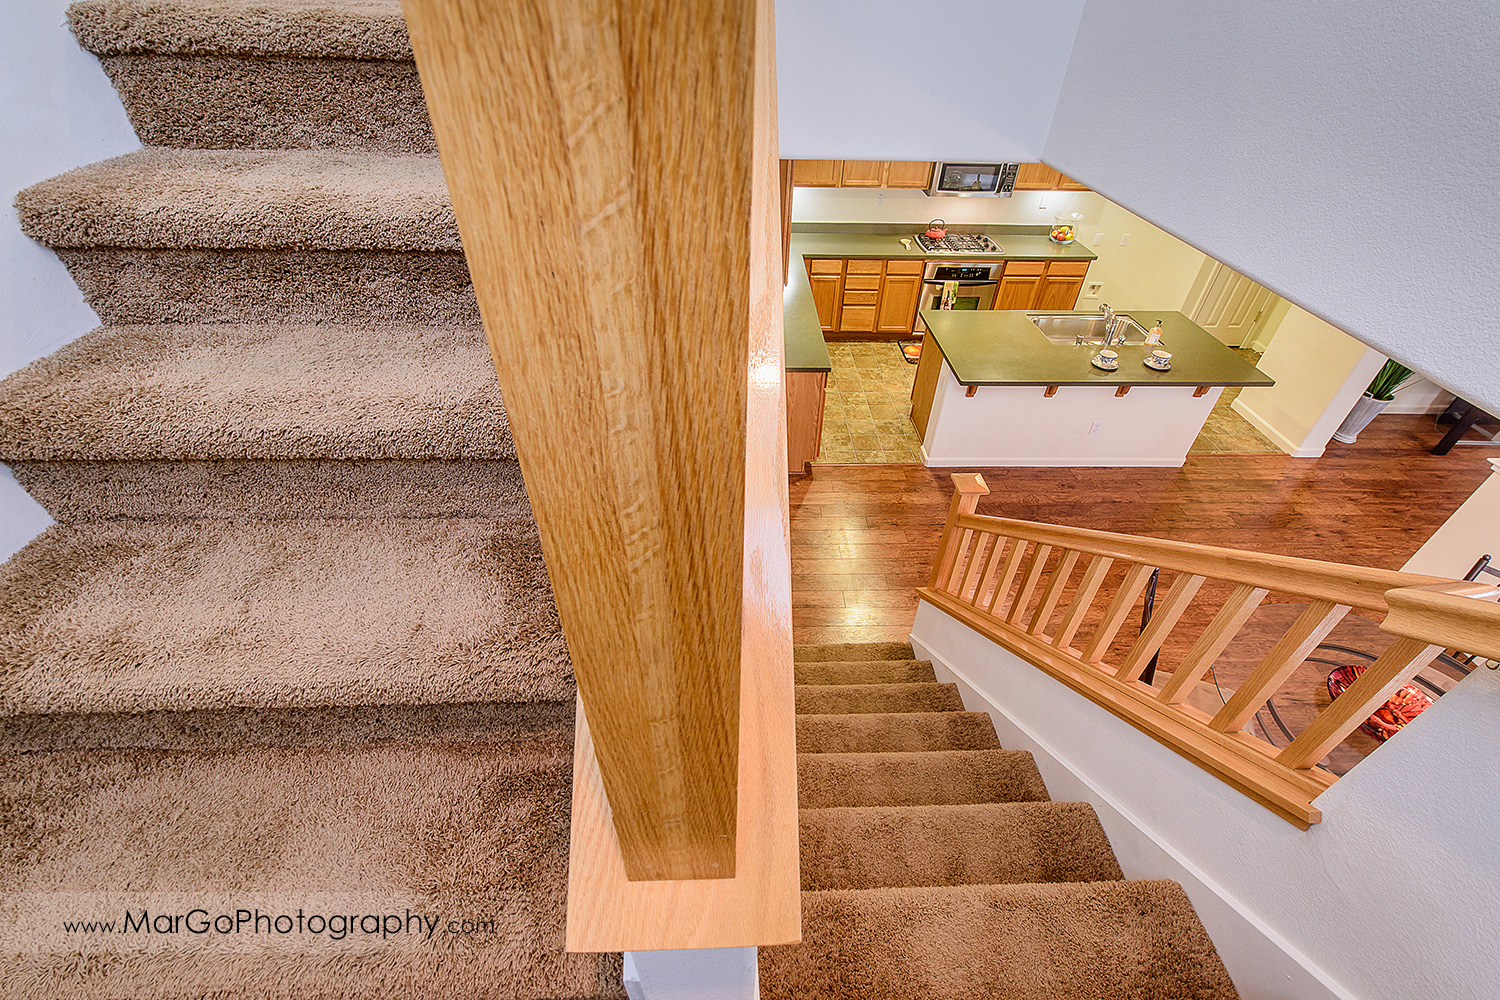 Pittsburd house staricase - real estate photography